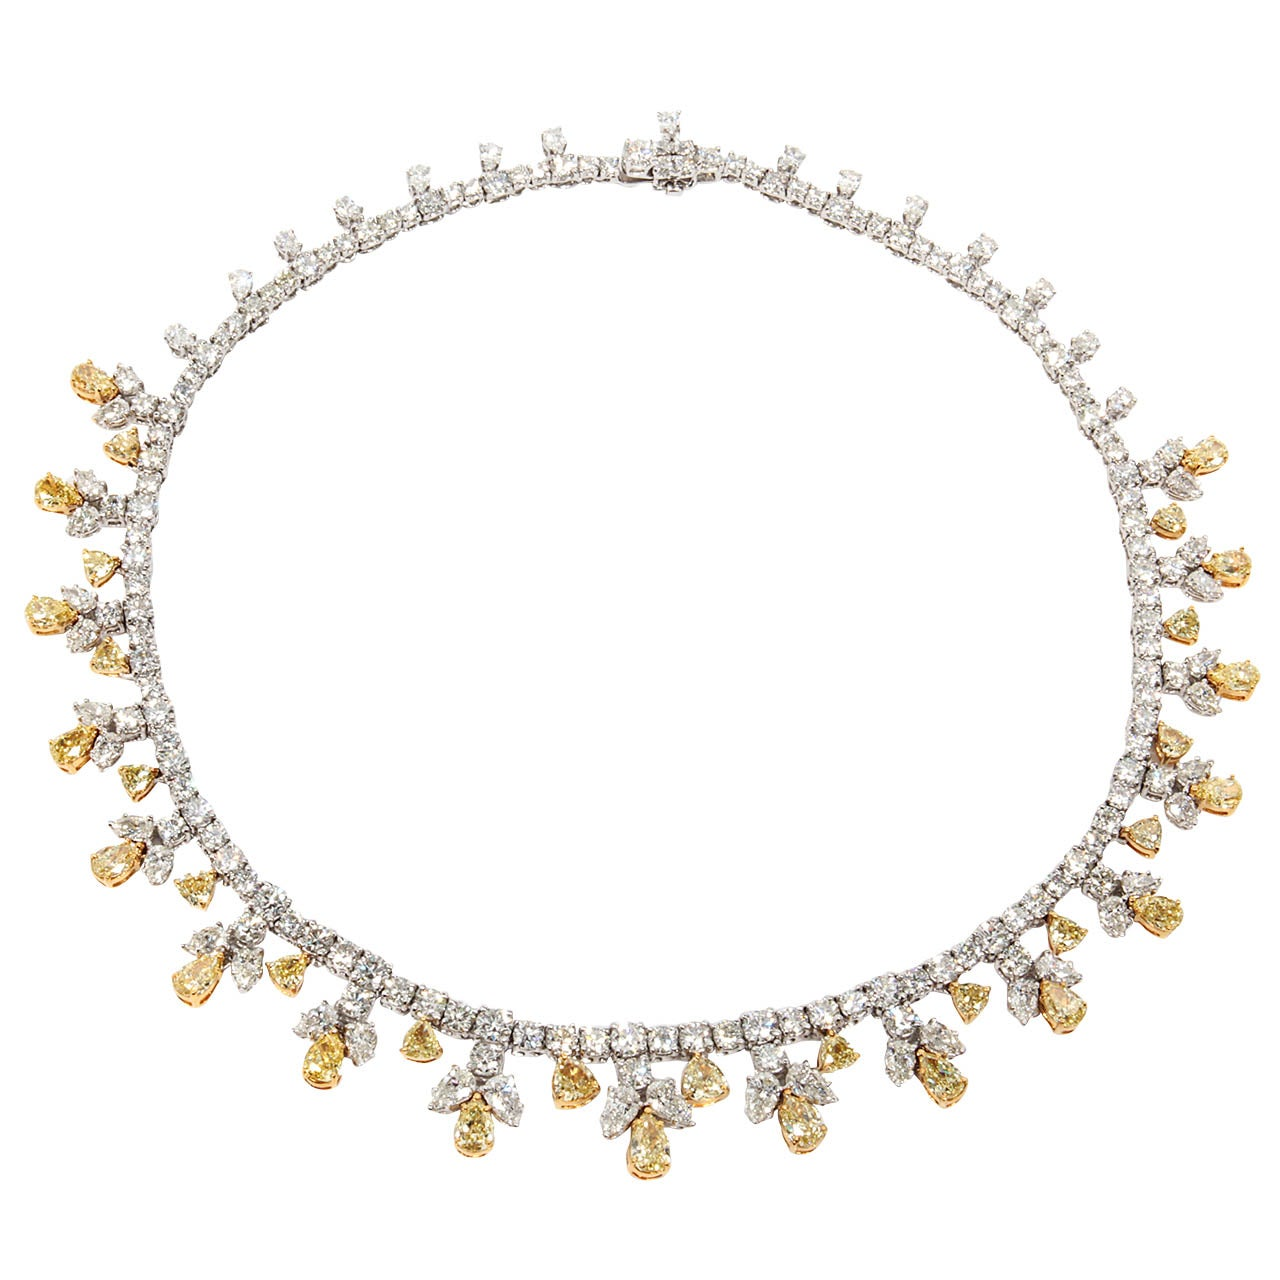 Classic yellow and white diamond platinum necklace